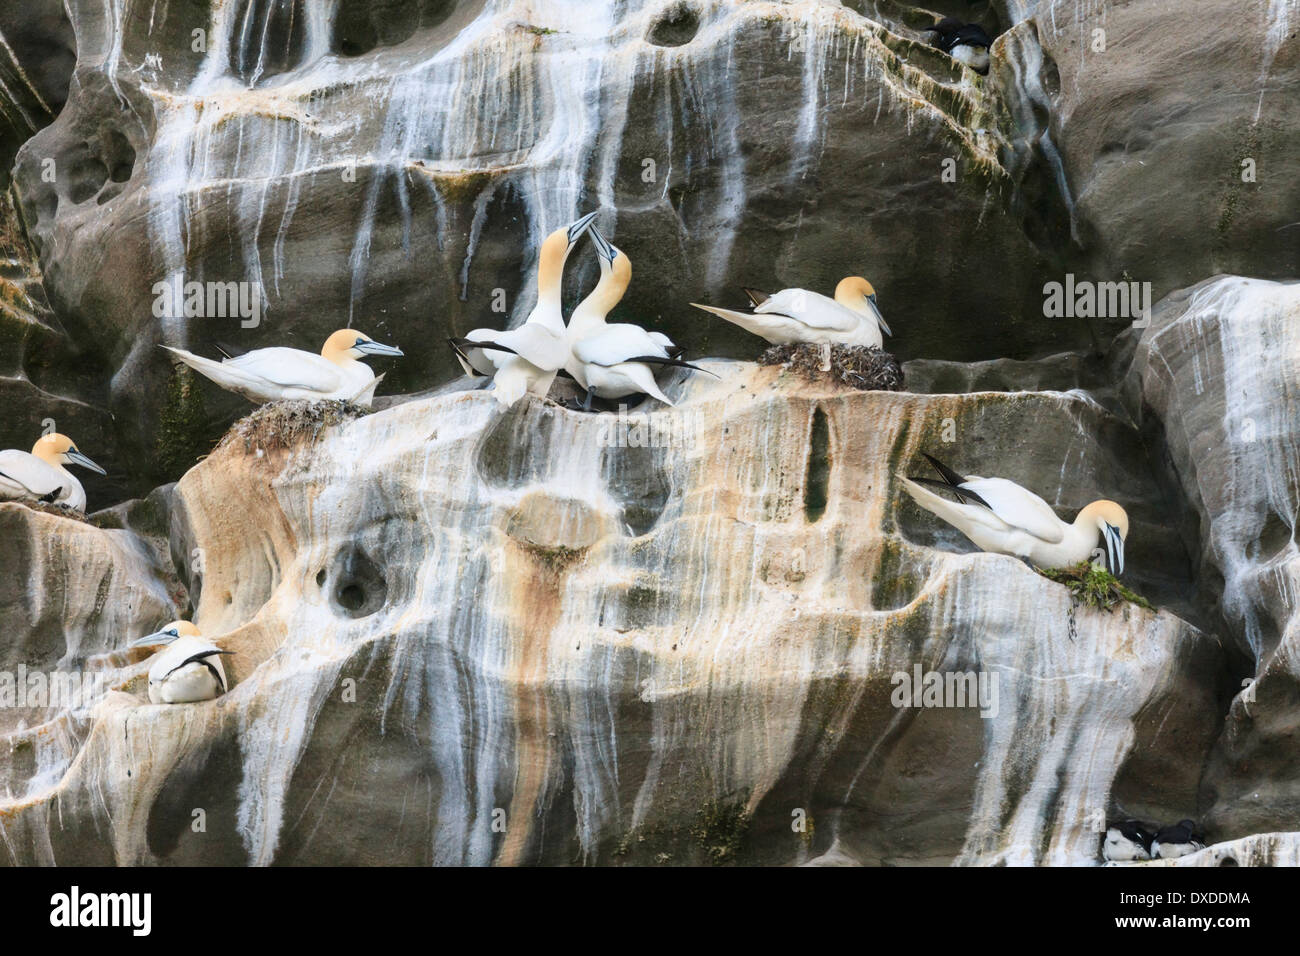 Seabird colony of Gannets on rock ledges of seacliffs during summer breeding season in May. Isle of Noss National Nature Reserve, Scotland, UK - Stock Image